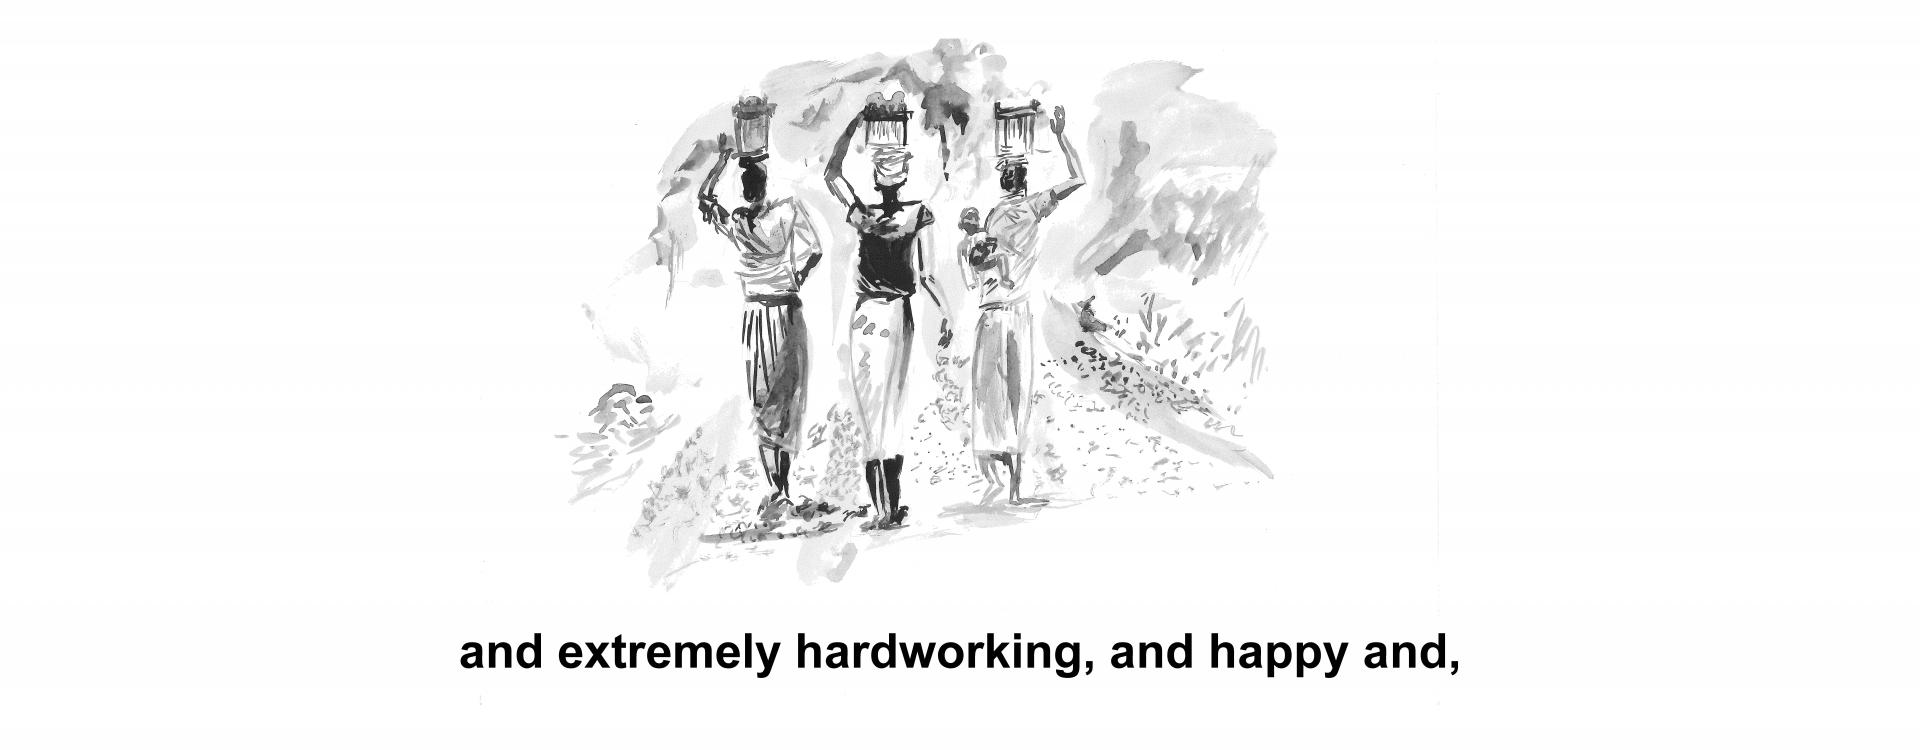 and extremely hardworking, and happy and,